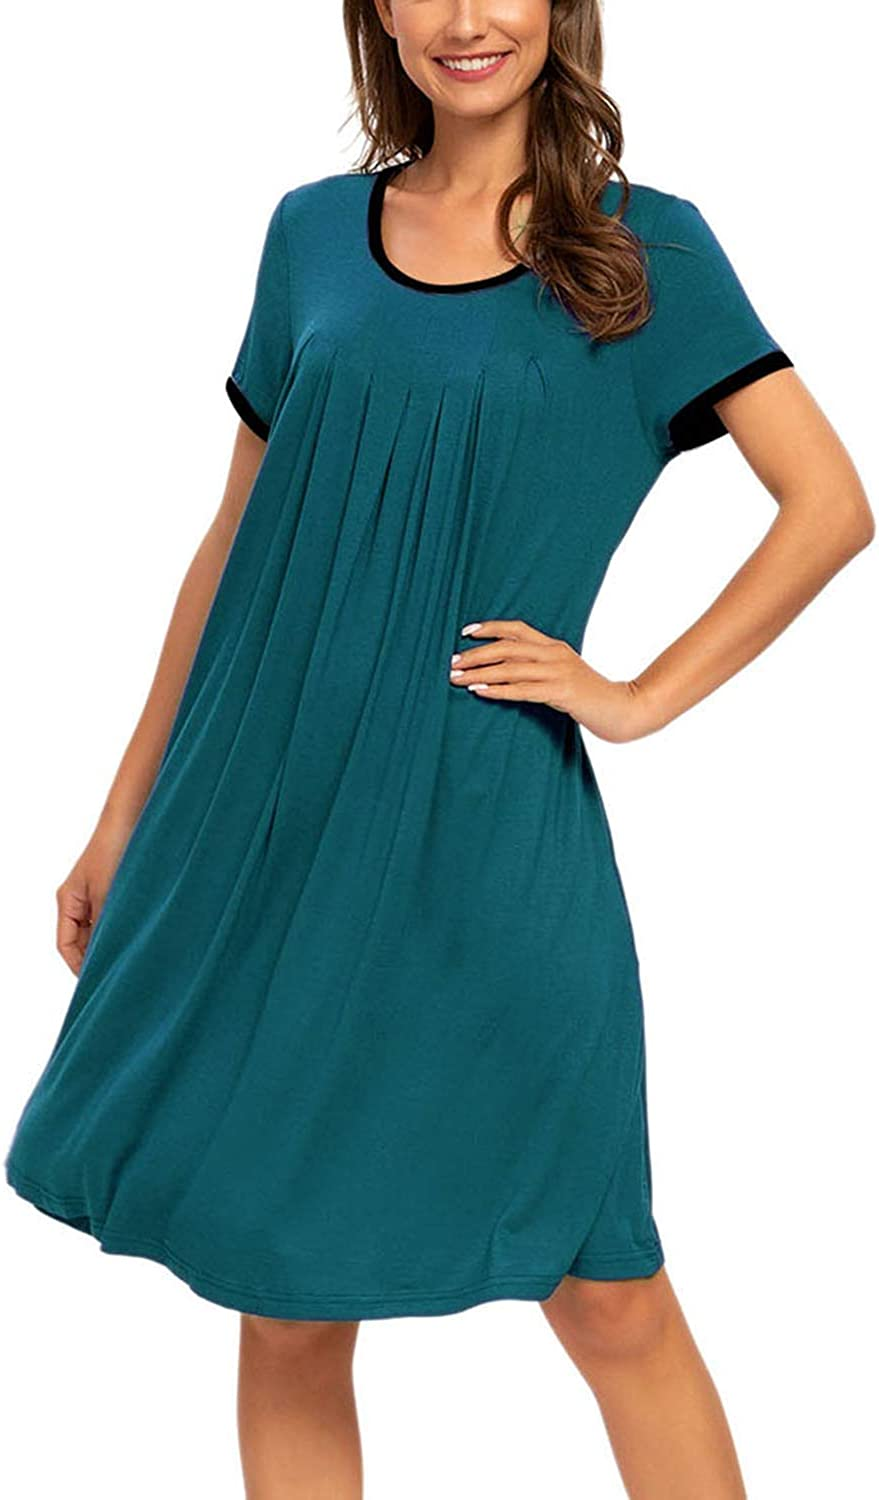 MINTLIMIT Womens Short Sleeve Pleated Scoopneck Sleep Dress Loungewear Nightshirts with Pockets